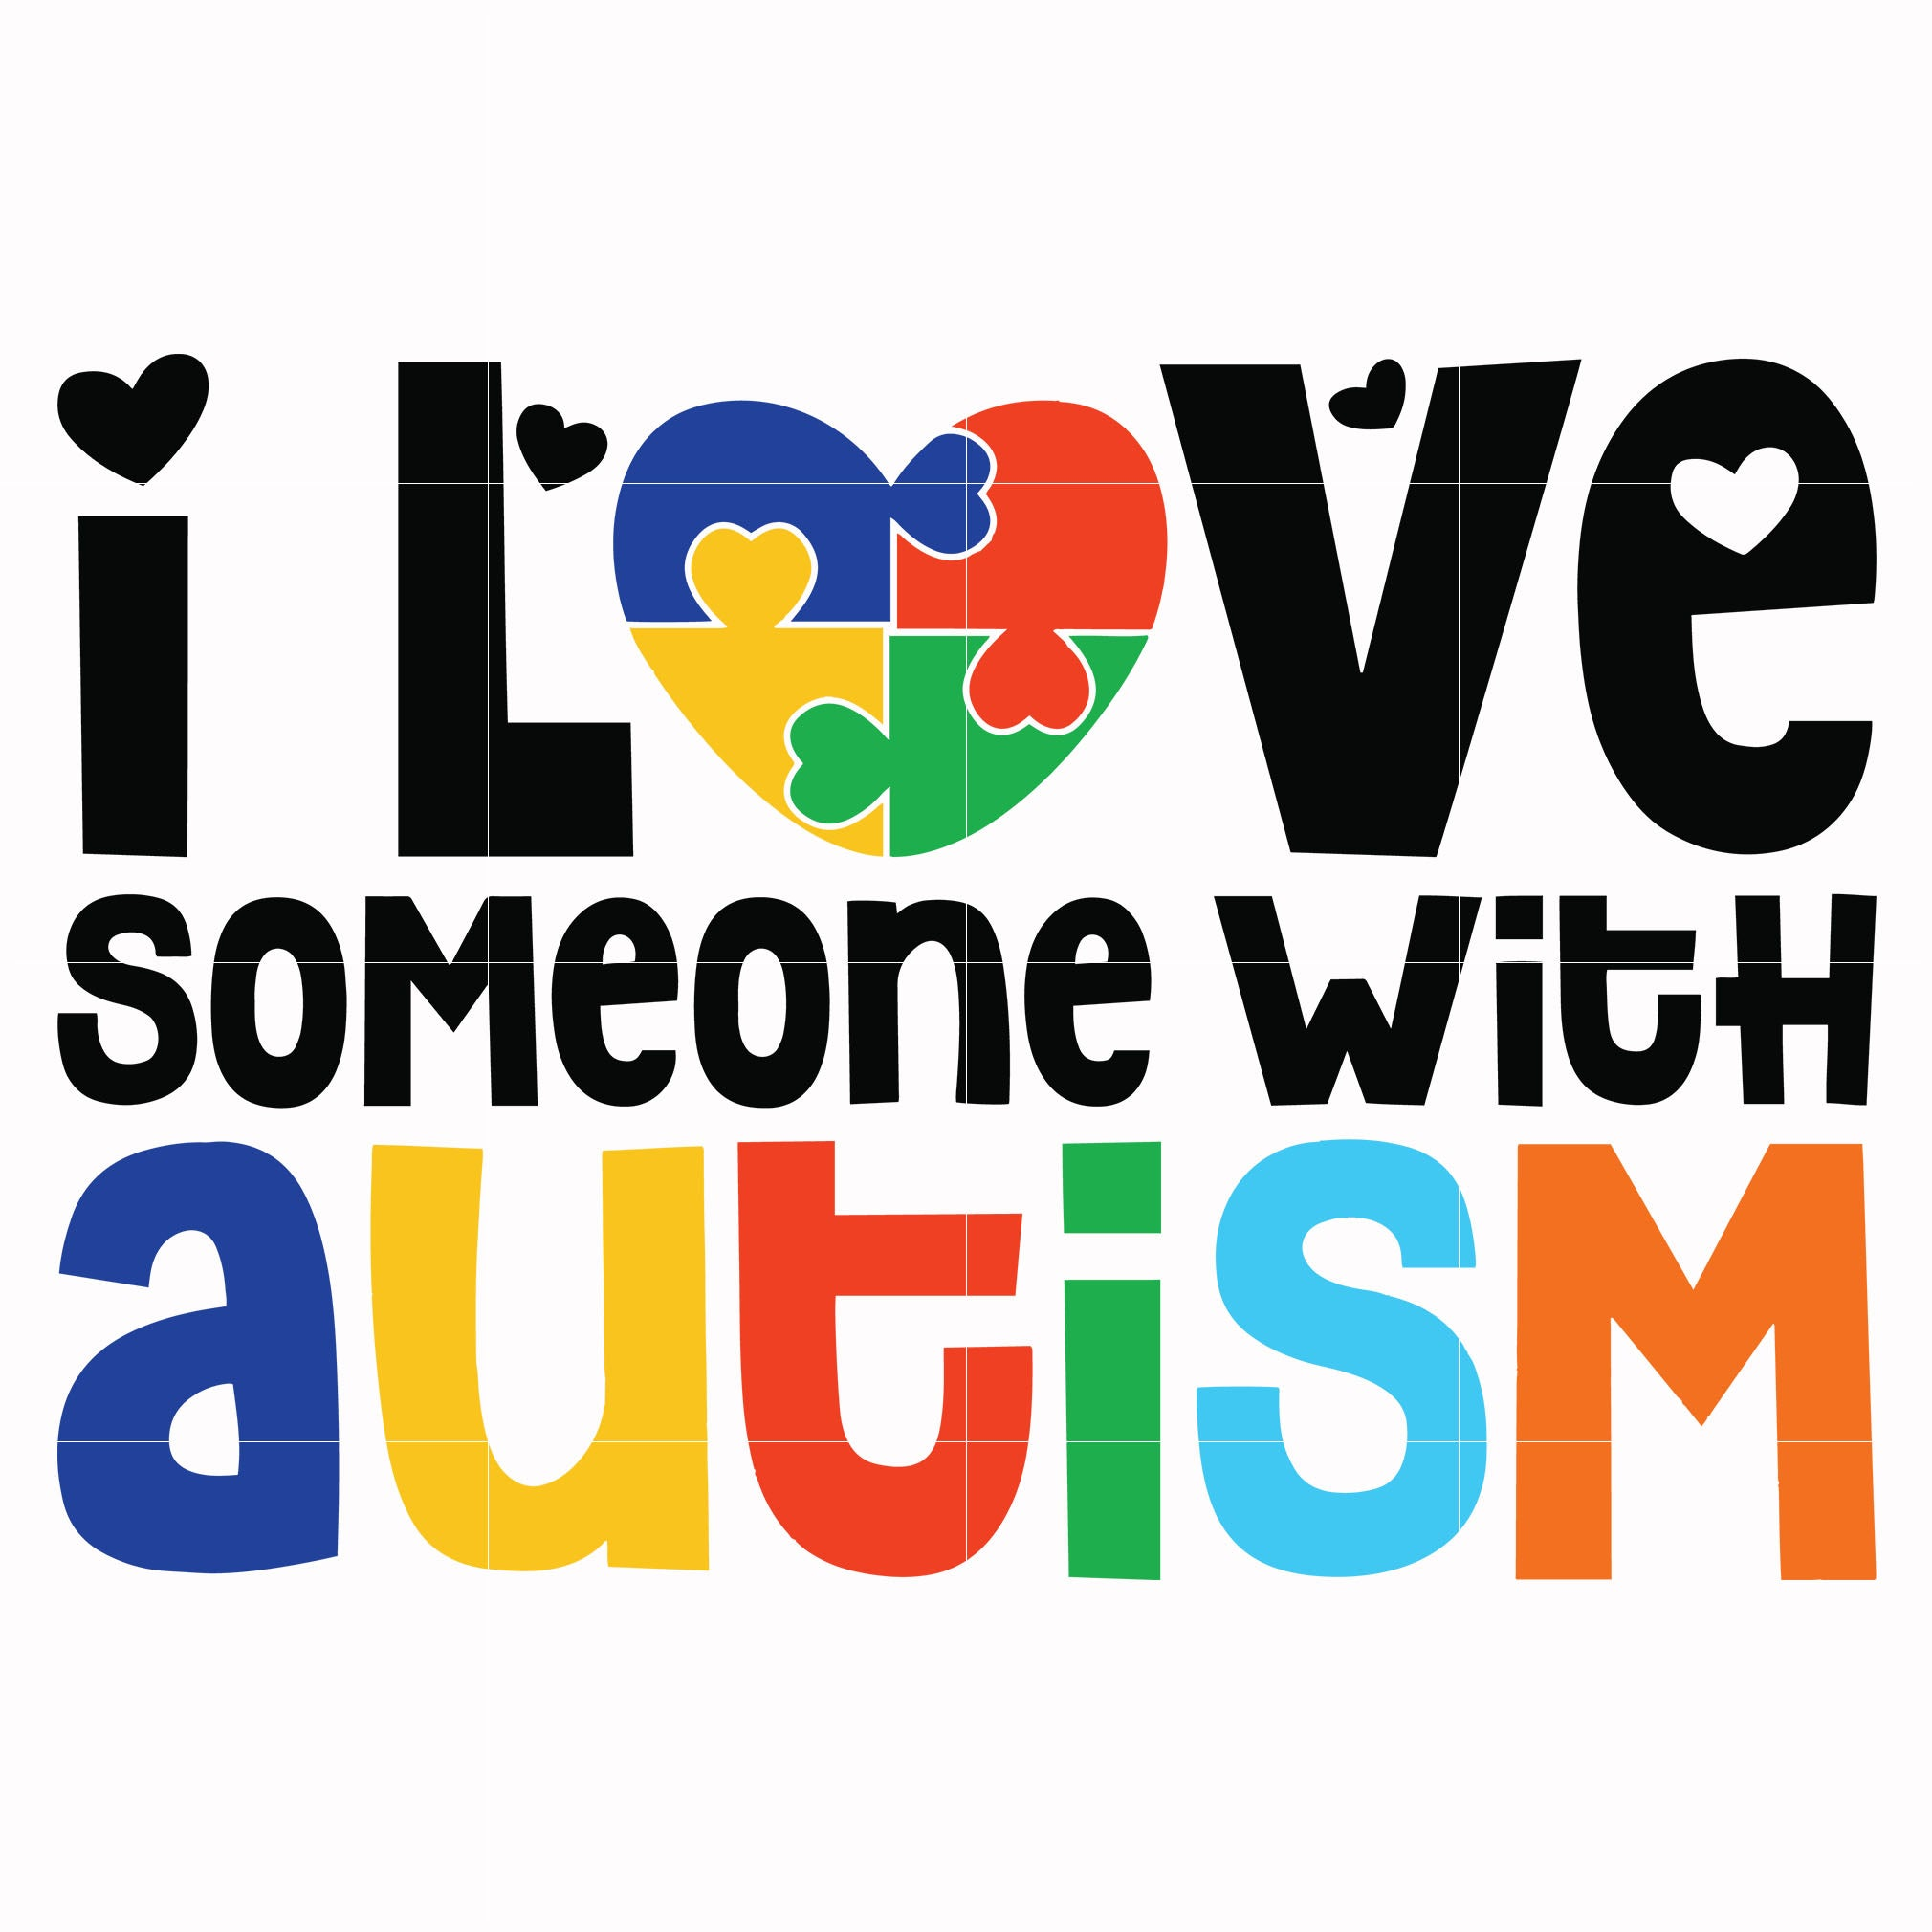 I love someone with autism svg, autism svg, autism awareness svg, dxf, eps, png digital file